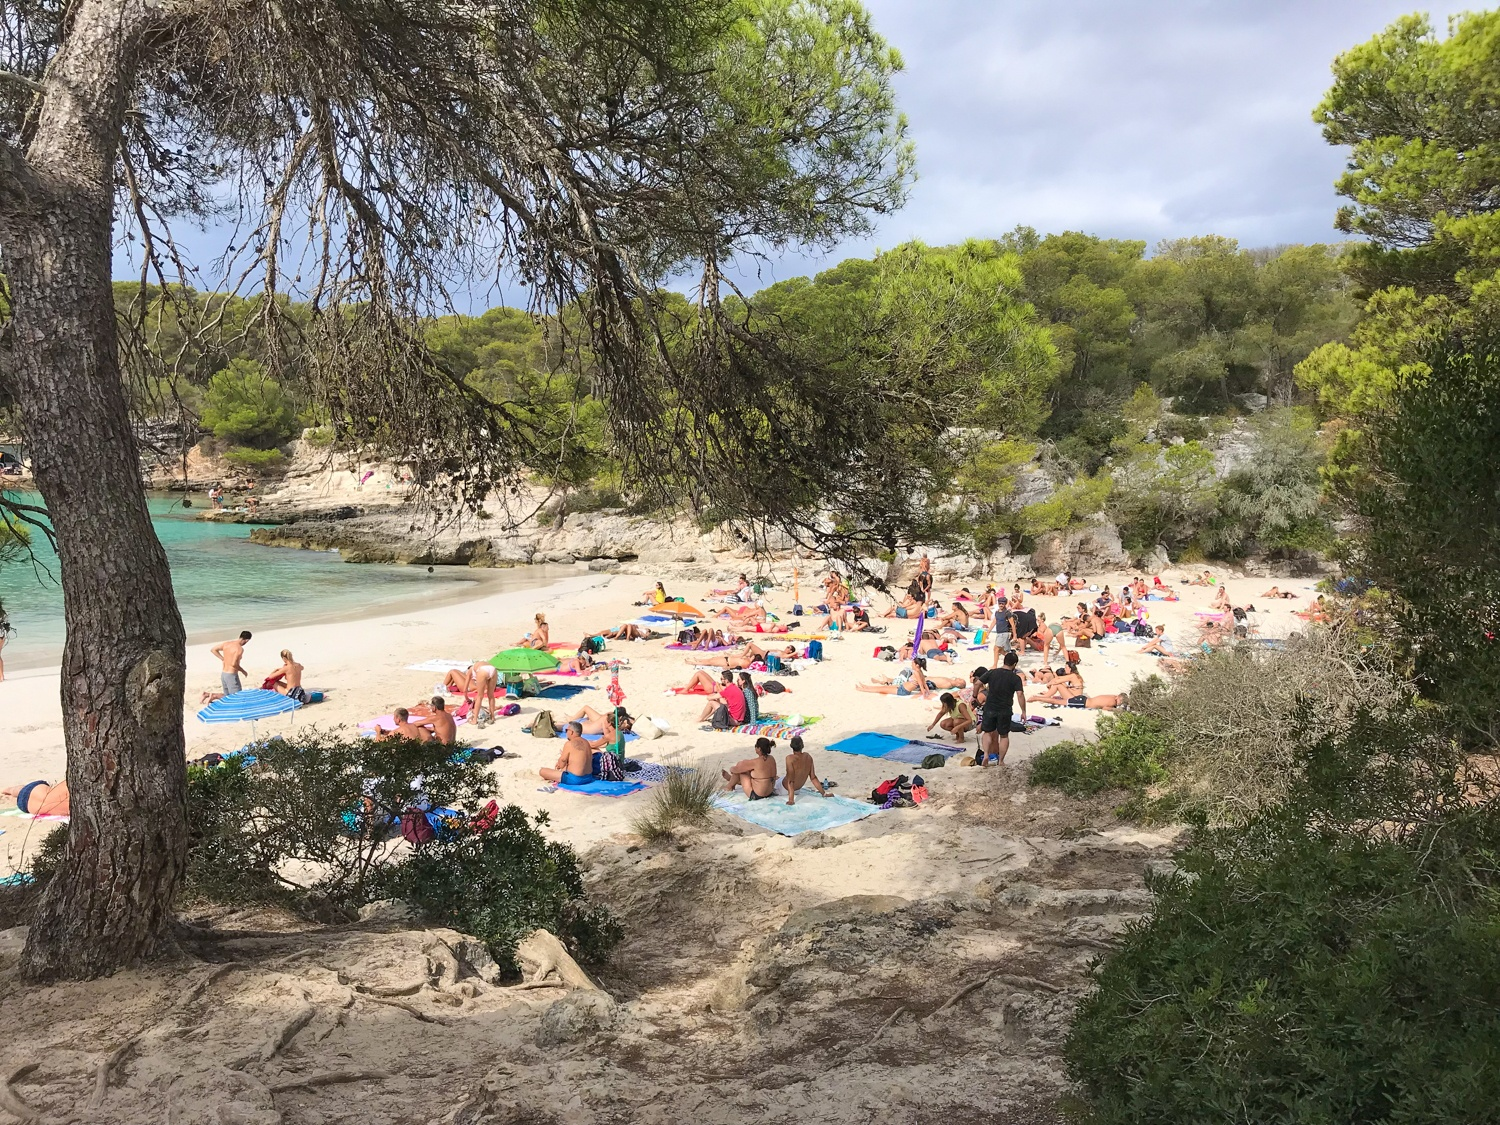 Cala Turqueta - Cami de Cavalls Menorca Photo Heatheronhertravels.com